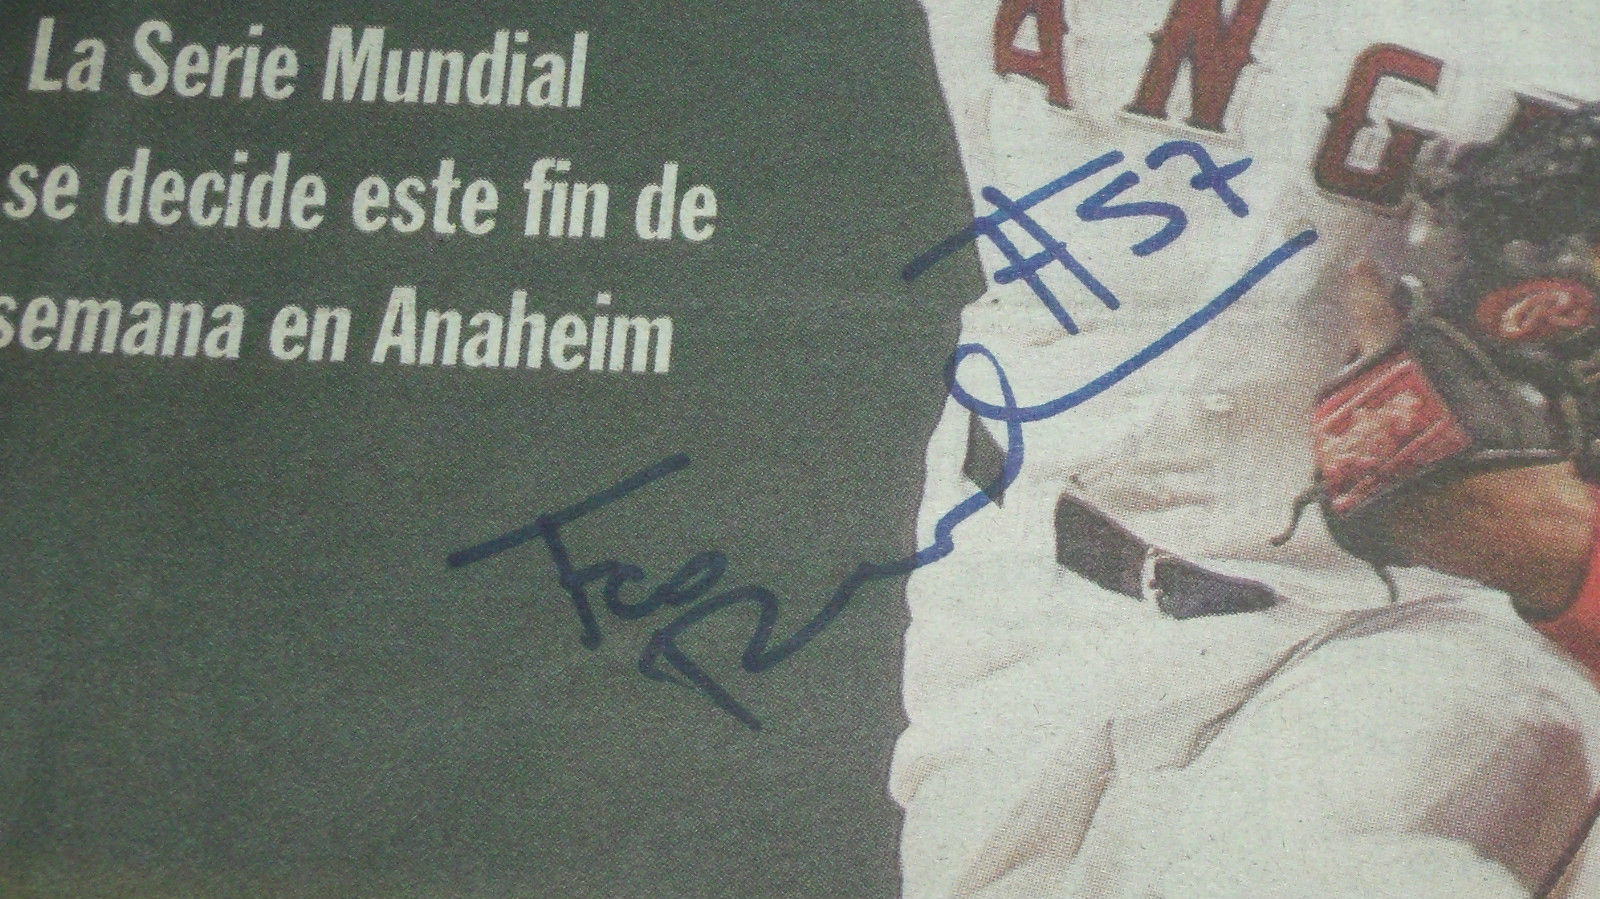 FRANCISCO RODRIGUEZ HAND SIGNED 2002 EXCELSIOR COVER WORLD SERIES